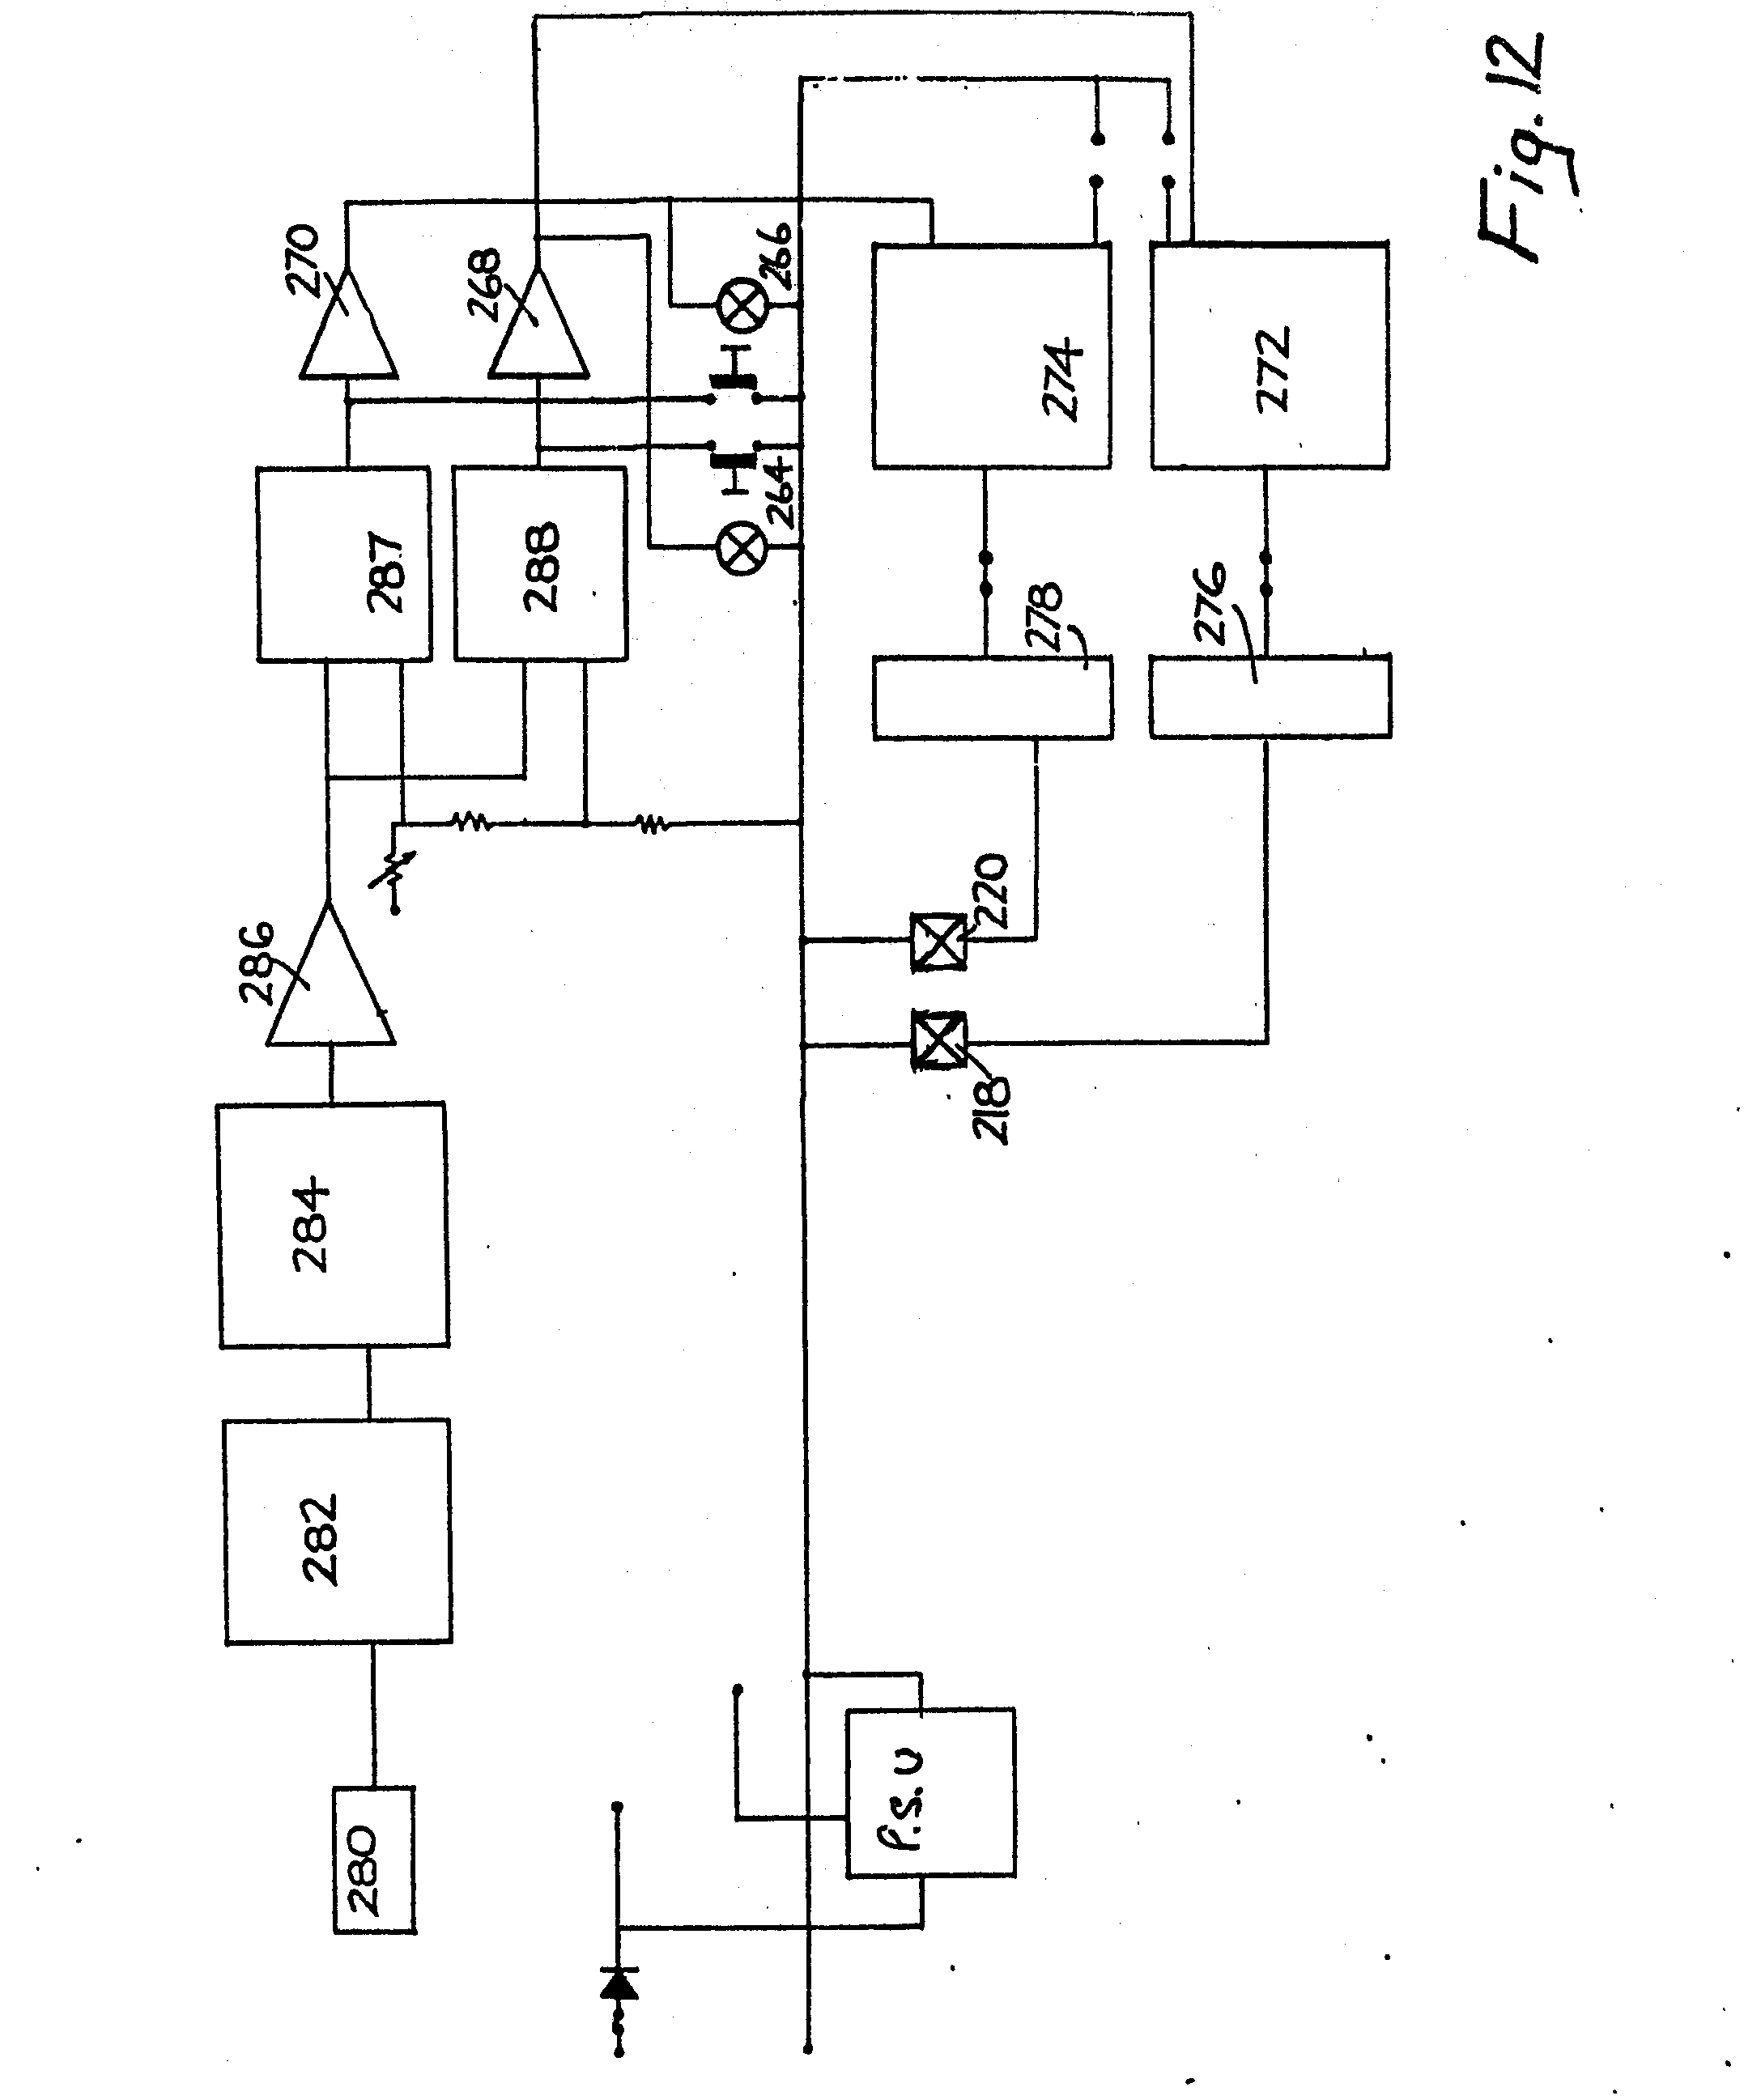 Stannah 260 Wiring Diagram